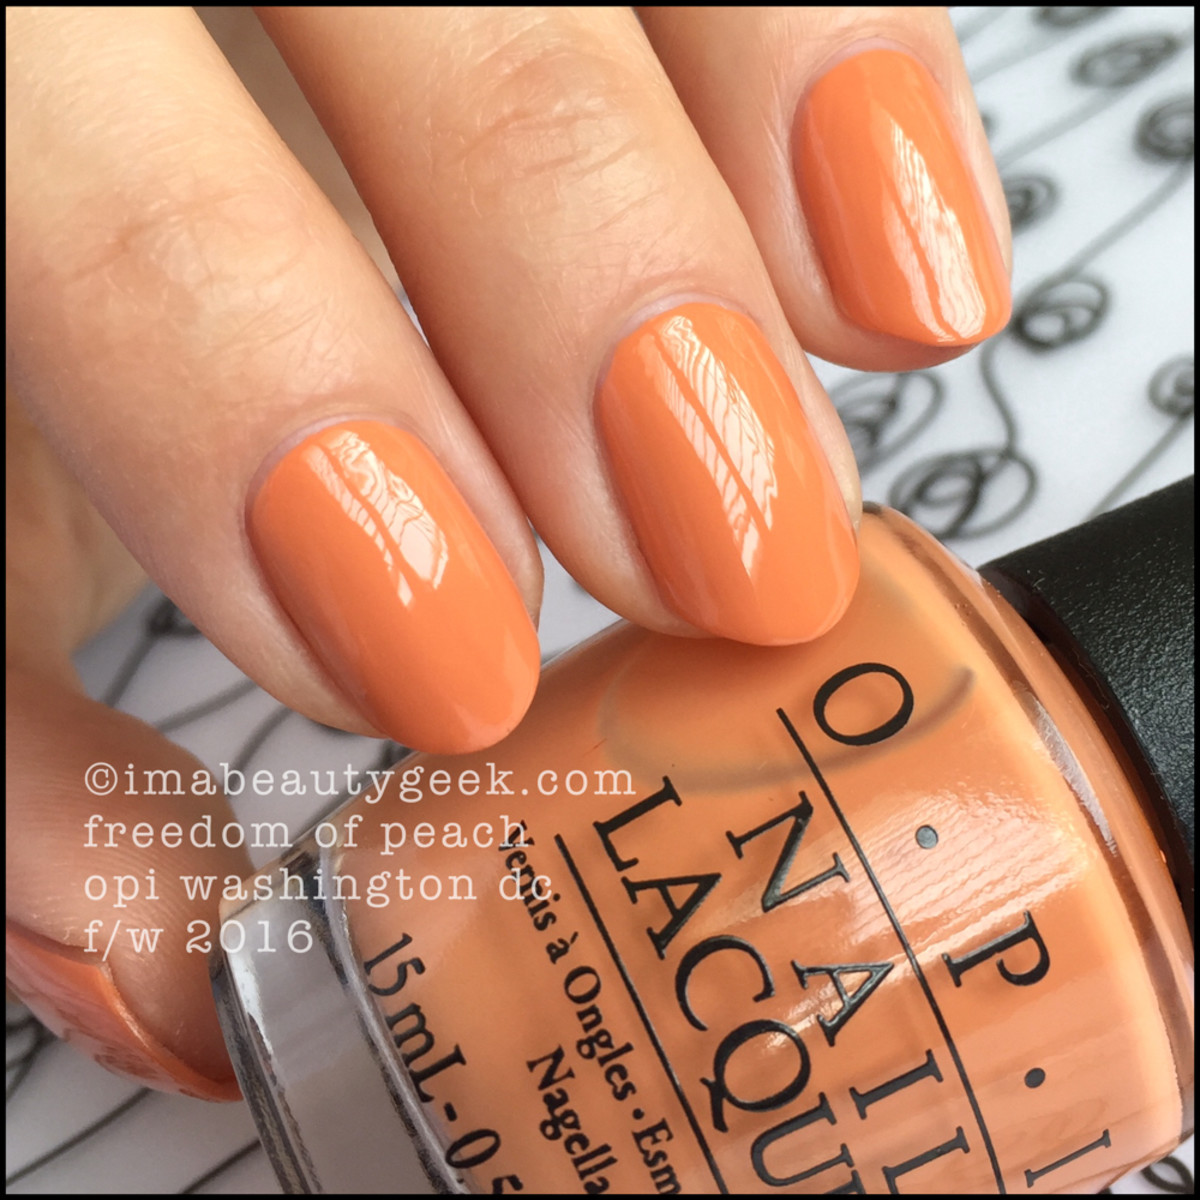 OPI Washington DC Collection Review Swatches_OPI Freedom of Peach